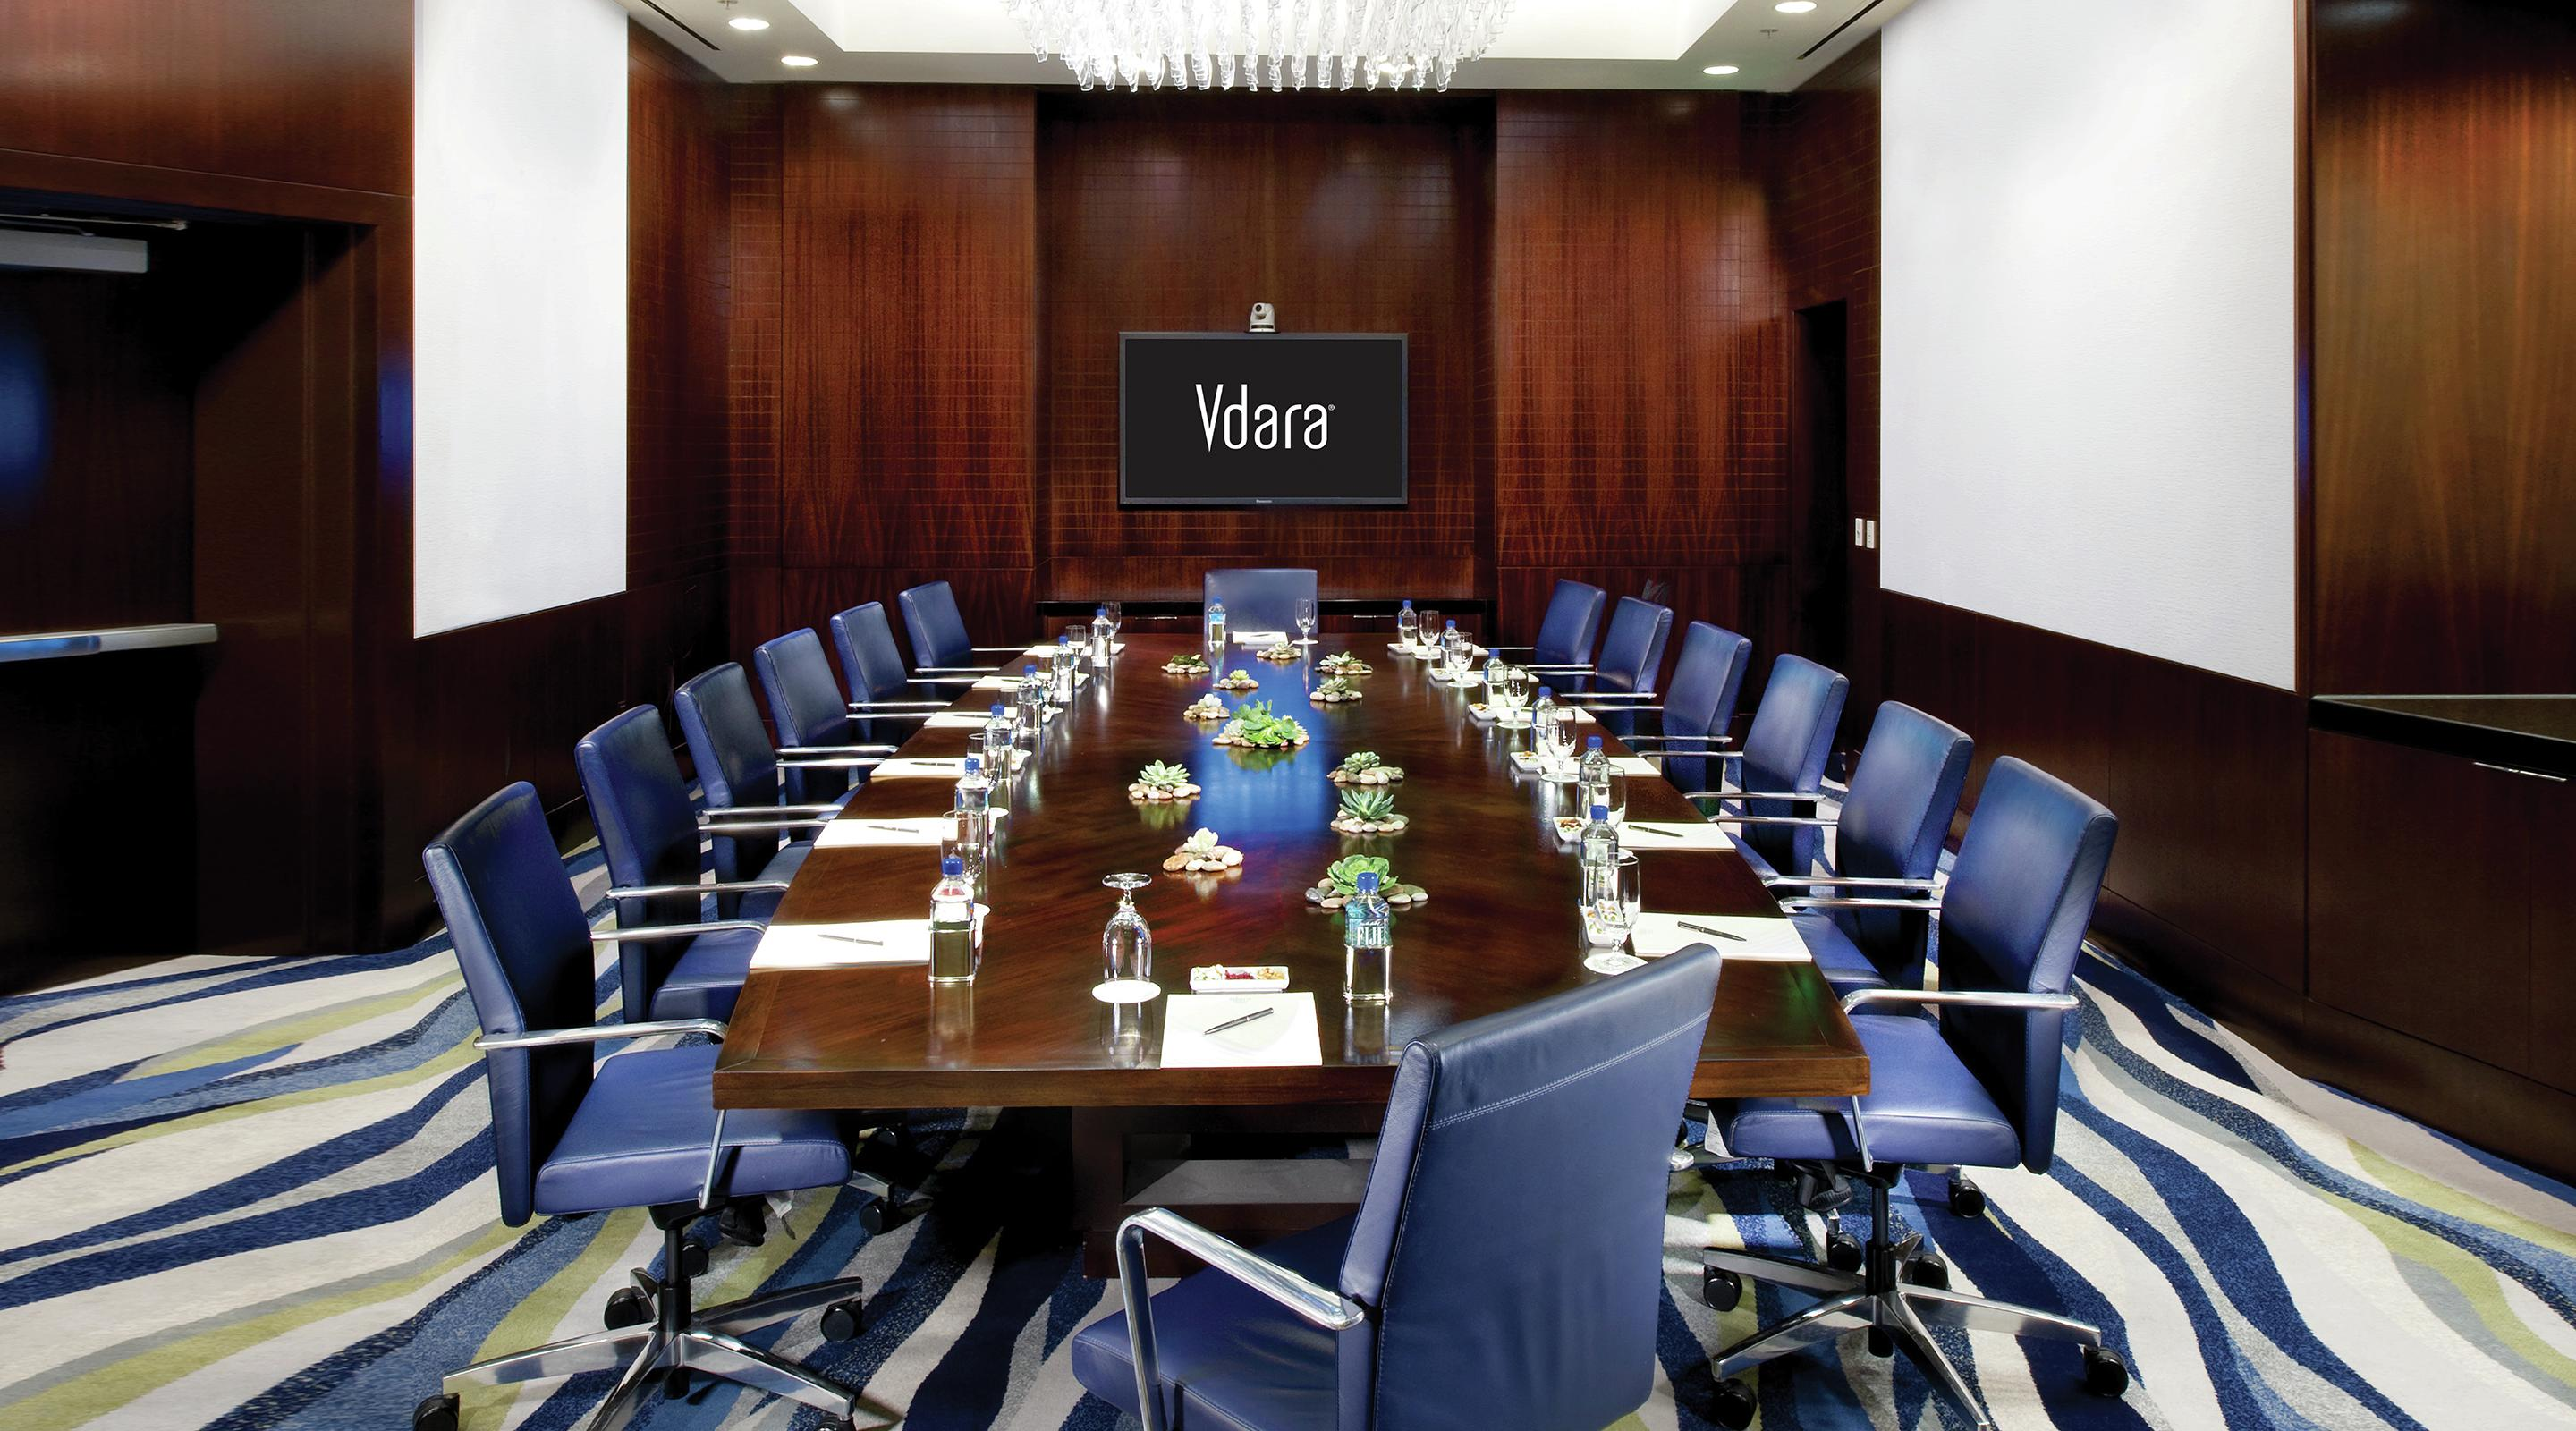 meeting rooms & convention spaces - vdara hotel & spa